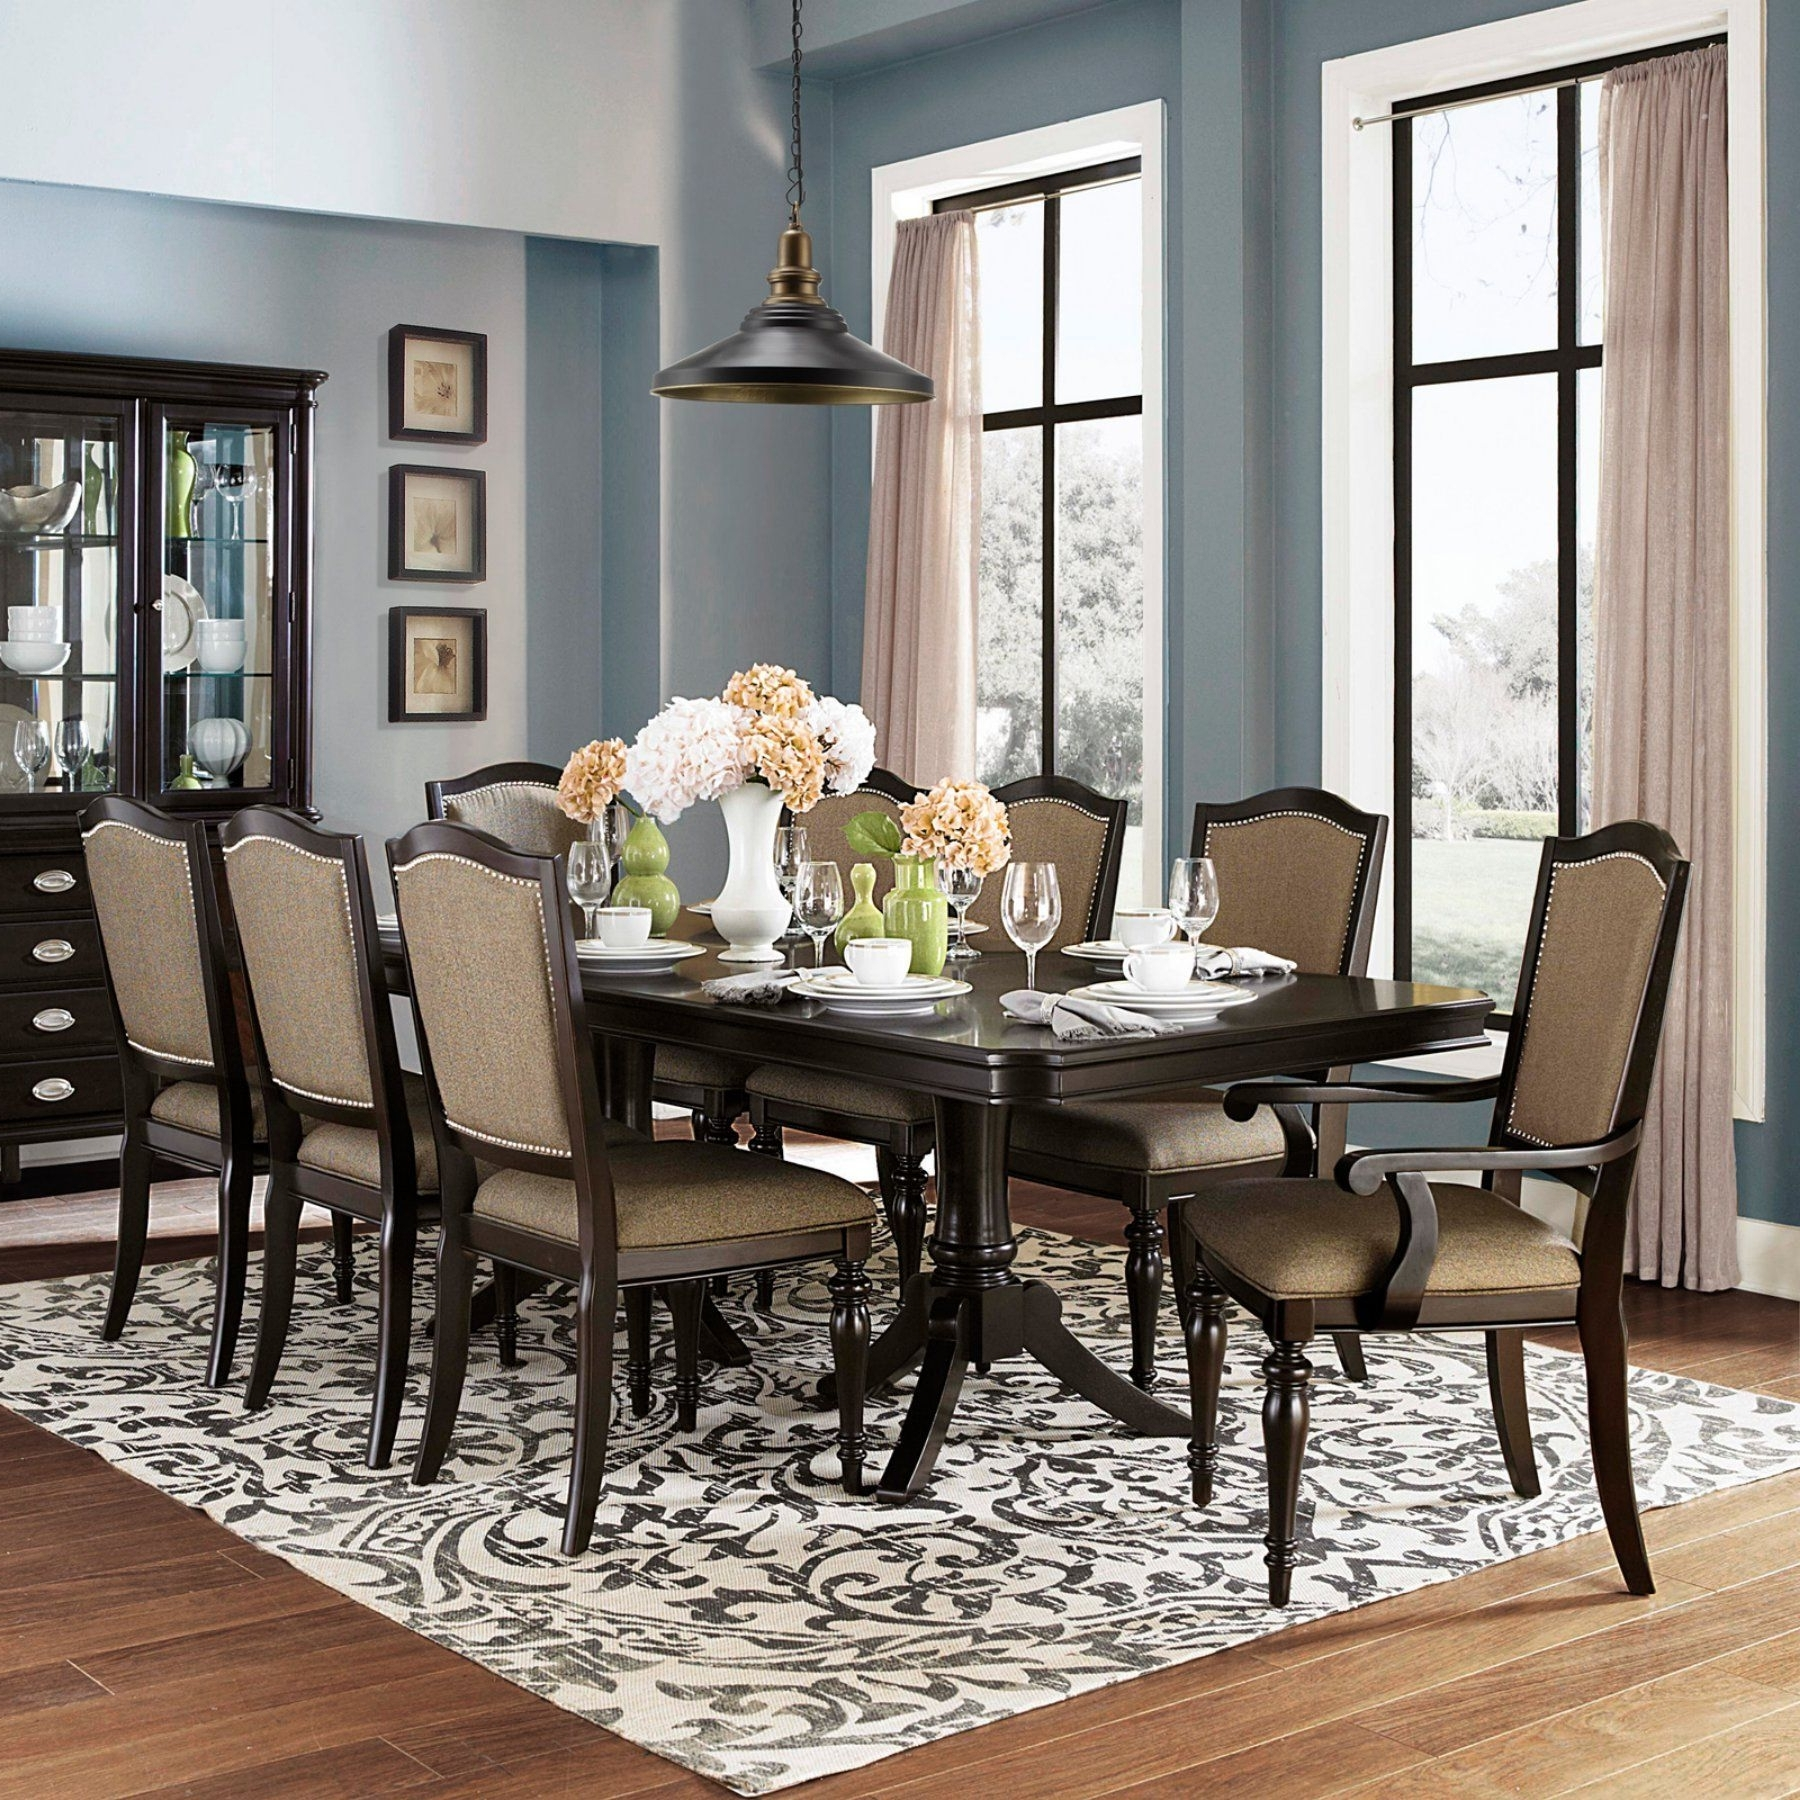 [%Homelegance Marston 9 Piece Extendable Dining Set – 2615Dc 96[9Pc With 2017 Craftsman 9 Piece Extension Dining Sets With Uph Side Chairs|Craftsman 9 Piece Extension Dining Sets With Uph Side Chairs Intended For Latest Homelegance Marston 9 Piece Extendable Dining Set – 2615Dc 96[9Pc|2017 Craftsman 9 Piece Extension Dining Sets With Uph Side Chairs Intended For Homelegance Marston 9 Piece Extendable Dining Set – 2615Dc 96[9Pc|Well Known Homelegance Marston 9 Piece Extendable Dining Set – 2615Dc 96[9Pc In Craftsman 9 Piece Extension Dining Sets With Uph Side Chairs%] (View 2 of 25)